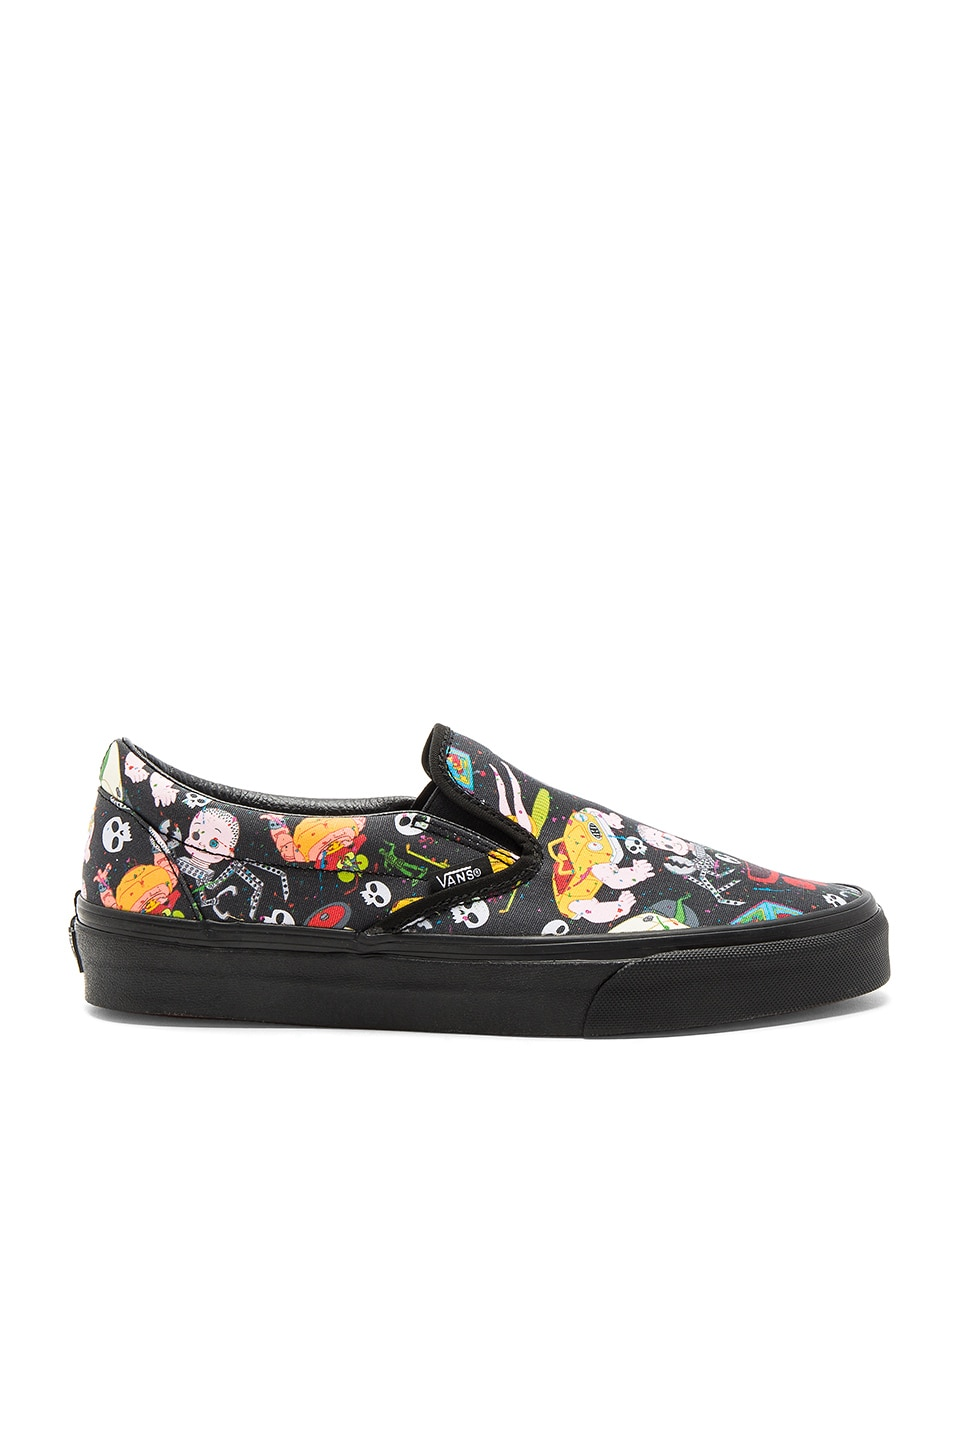 Vans Toy Story Classic Slip On in Sids Mutants & Black